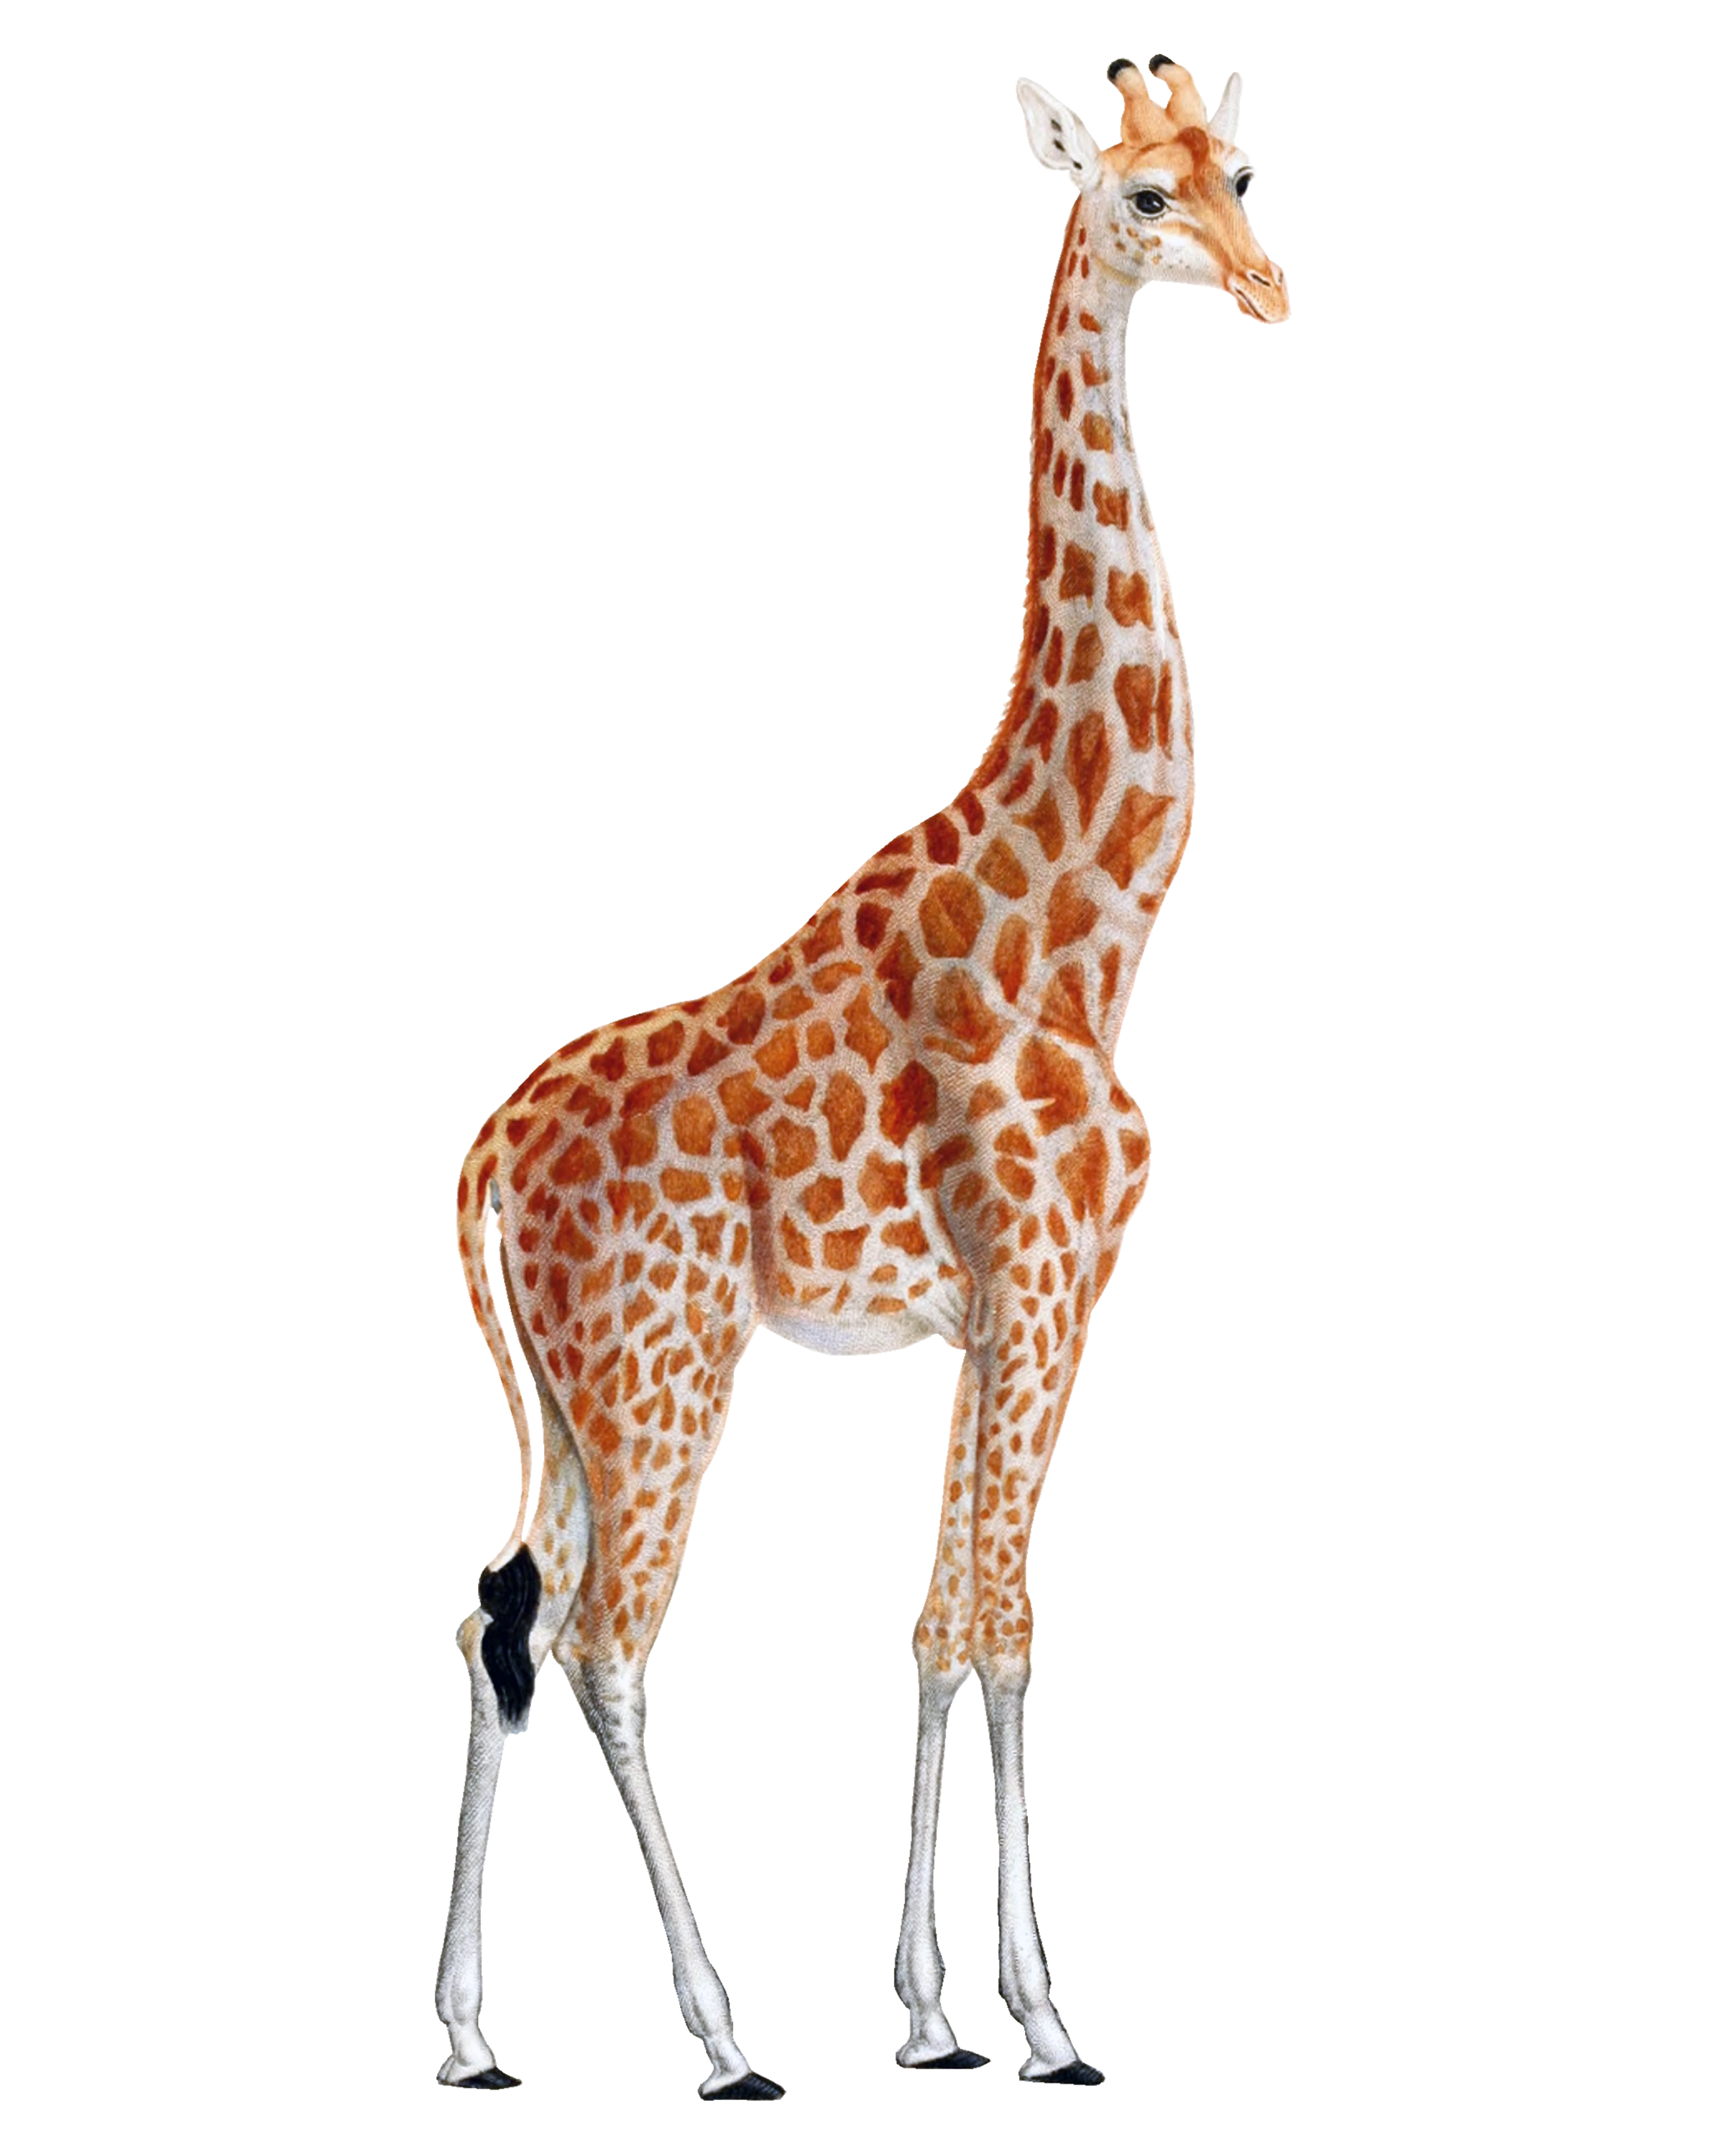 Giraffe png. Images